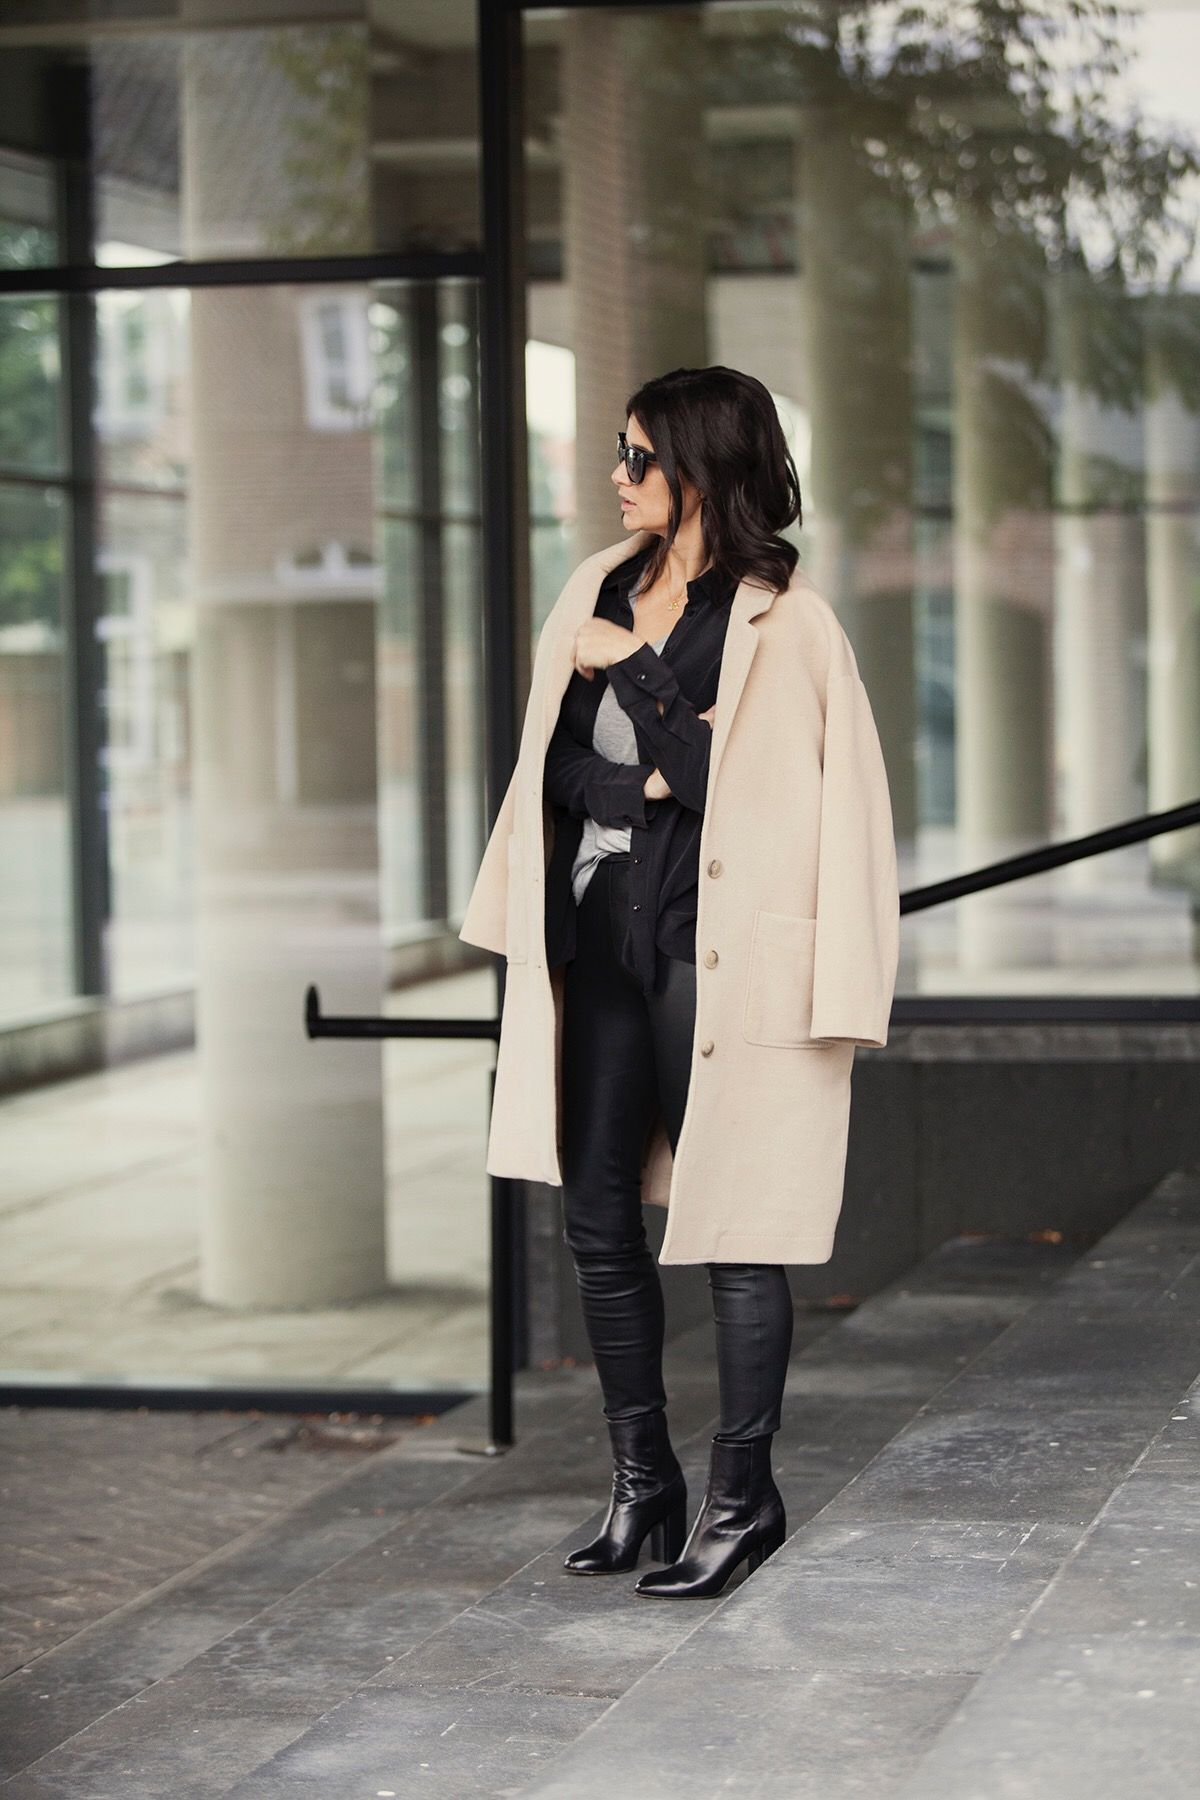 fall look 2016 blogforshops for perfectlybasics wearing joseph t-shirt, anine bing silk top, malene birger leather legging, rag&bone block heels, aberdeen coat Closed